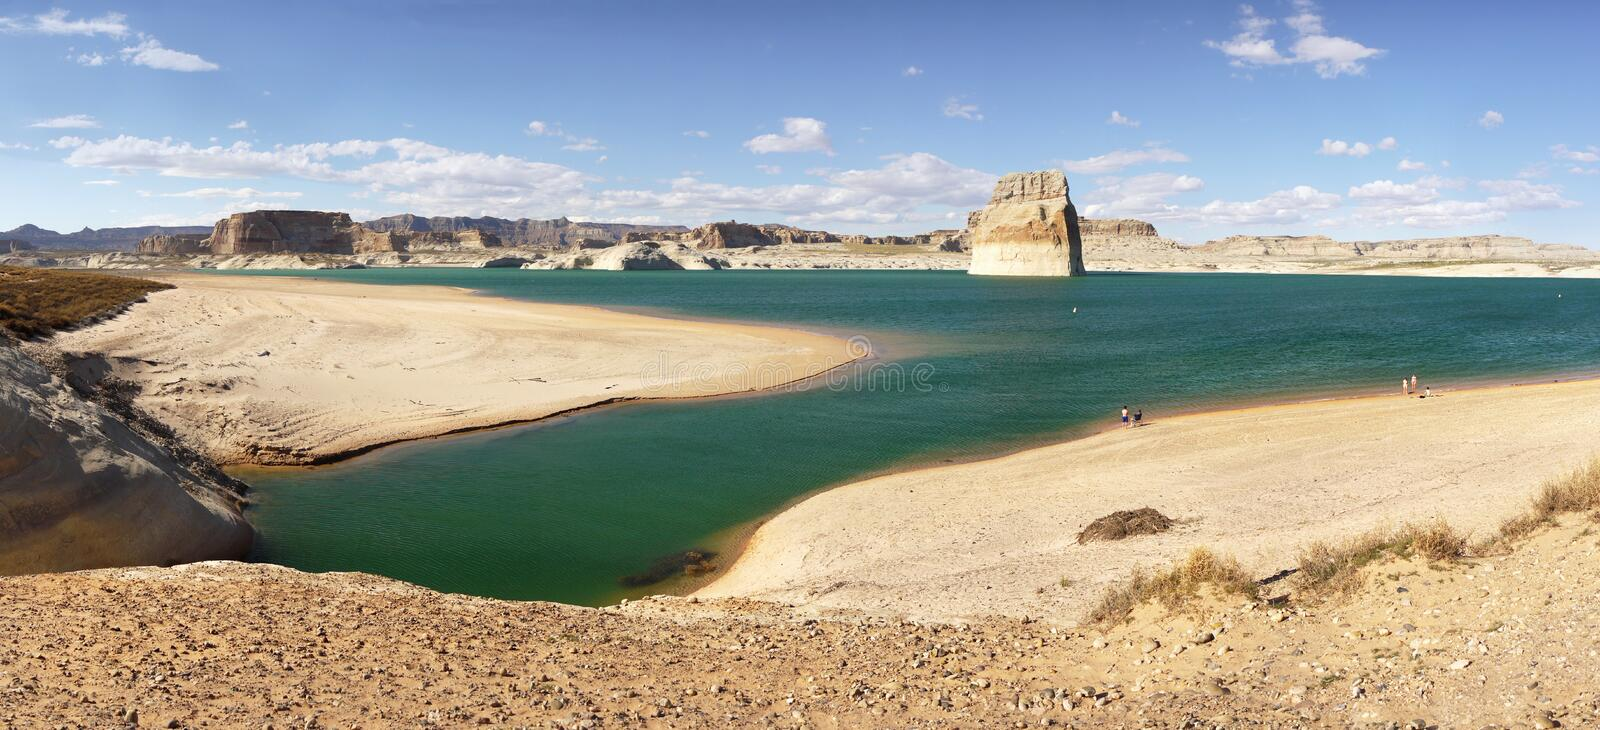 Lake Powell, Arizona, United States. The Lake Powell in desert landscape, panoramic view, Arizona. United States royalty free stock photography